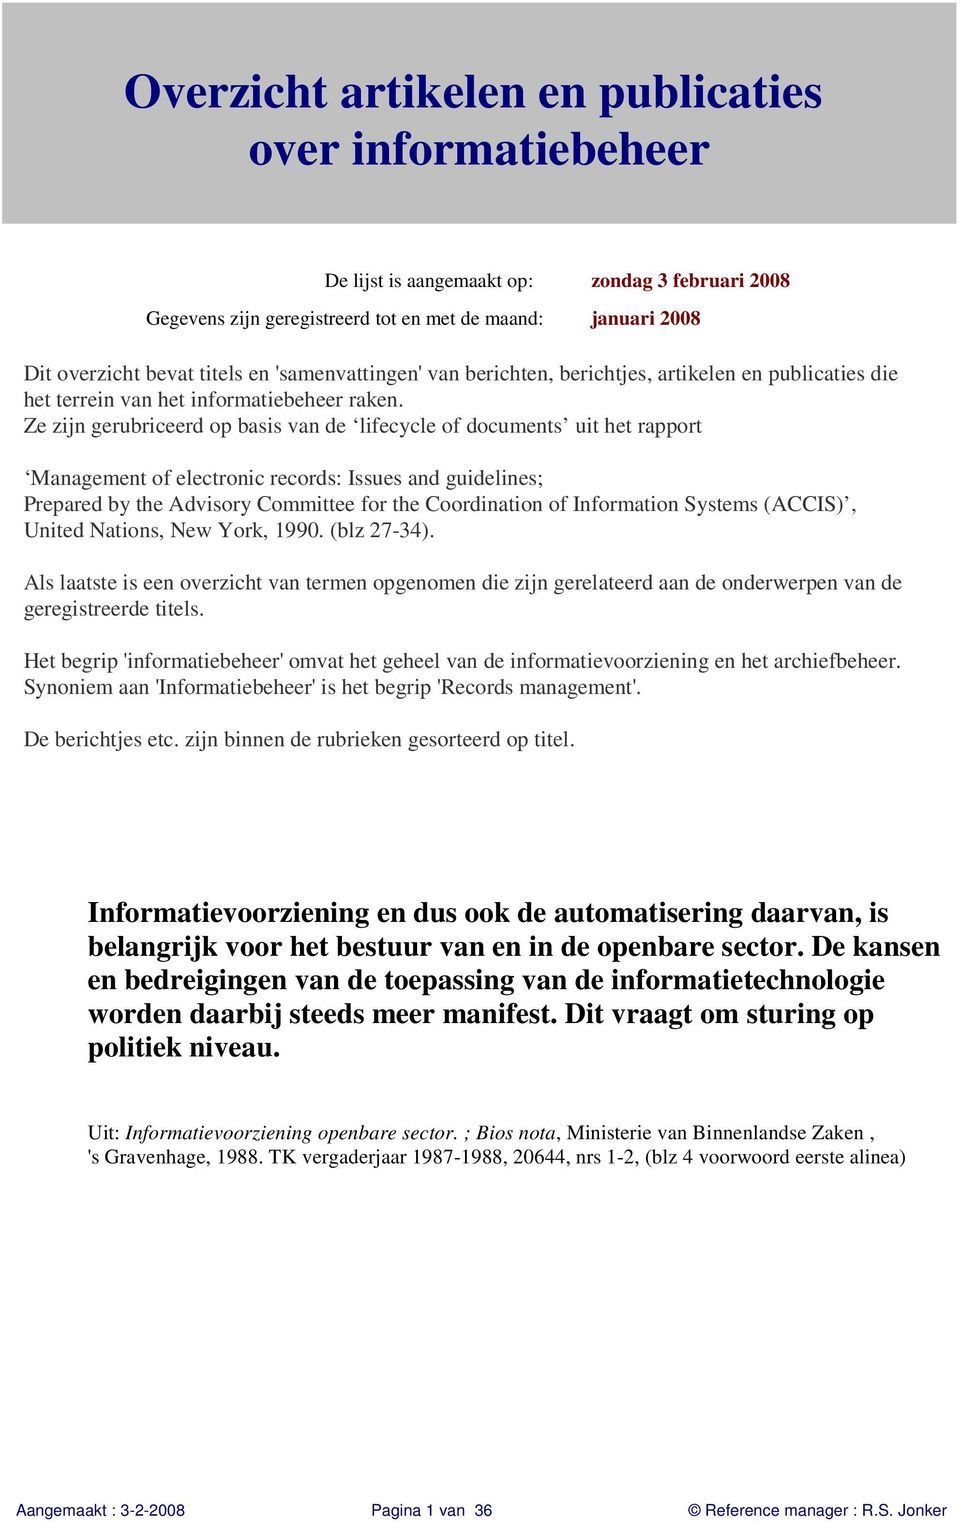 Ze zijn gerubriceerd op basis van de lifecycle of documents uit het rapport Management of electronic records: Issues and guidelines; Prepared by the Advisory Committee for the Coordination of